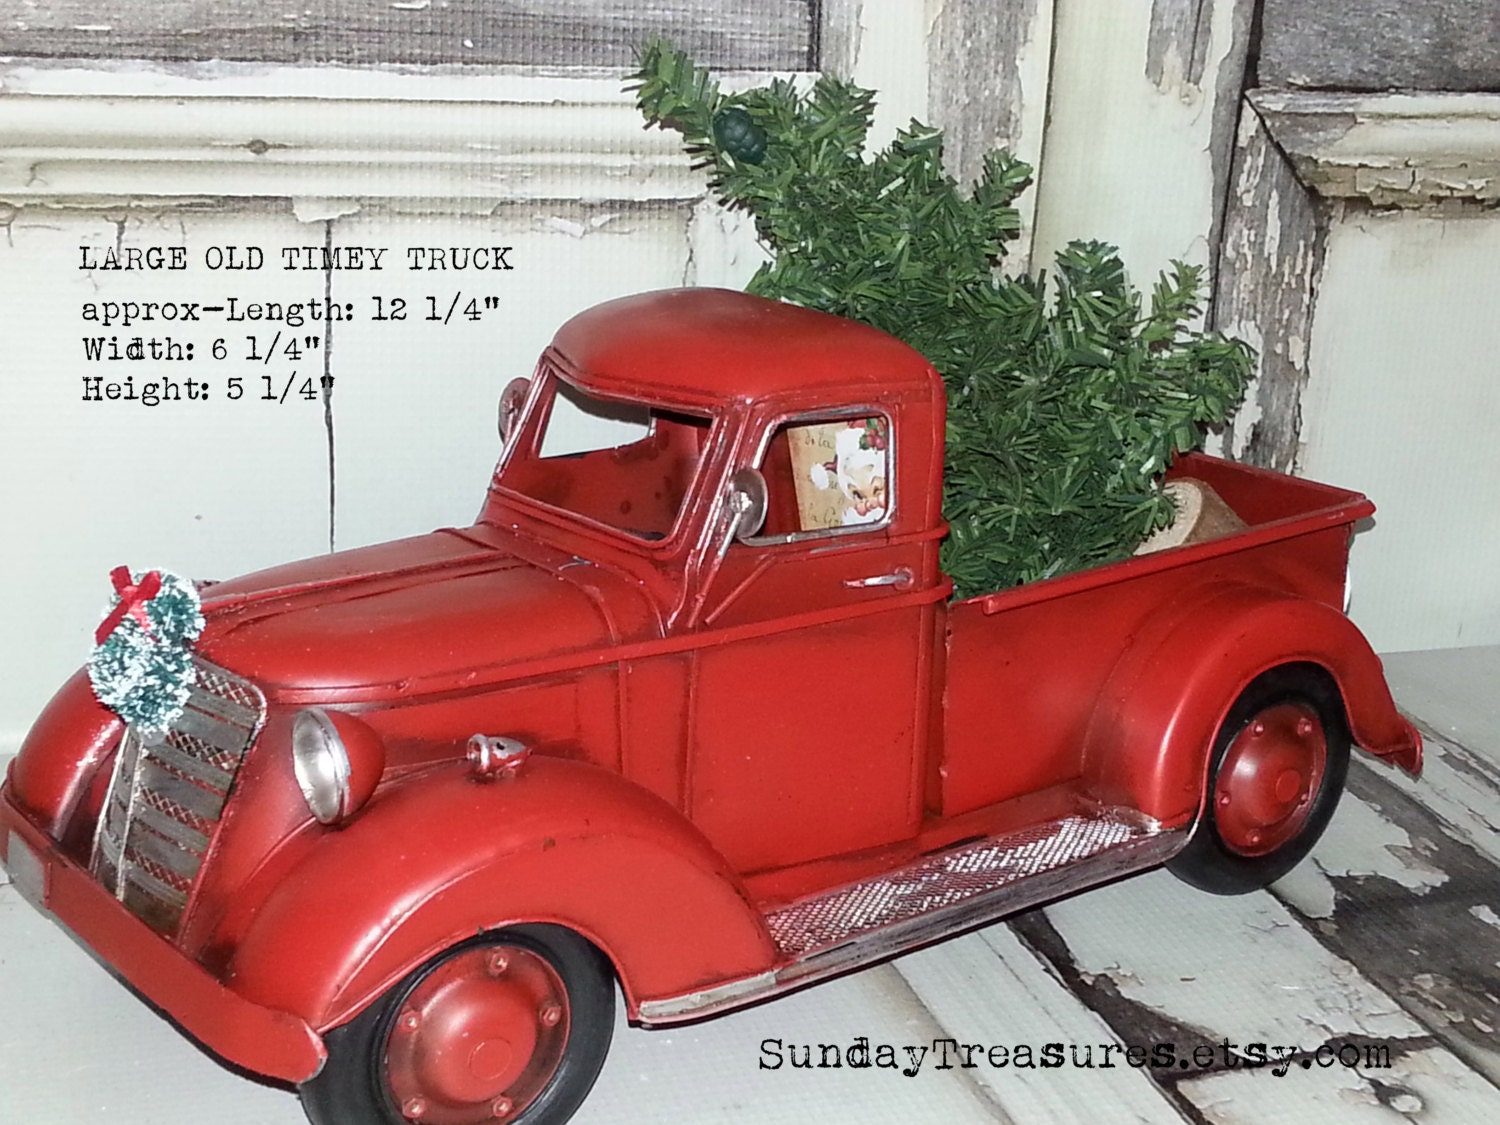 SALE Large Metal Old Fashioned Red Truck Christmas Decor /